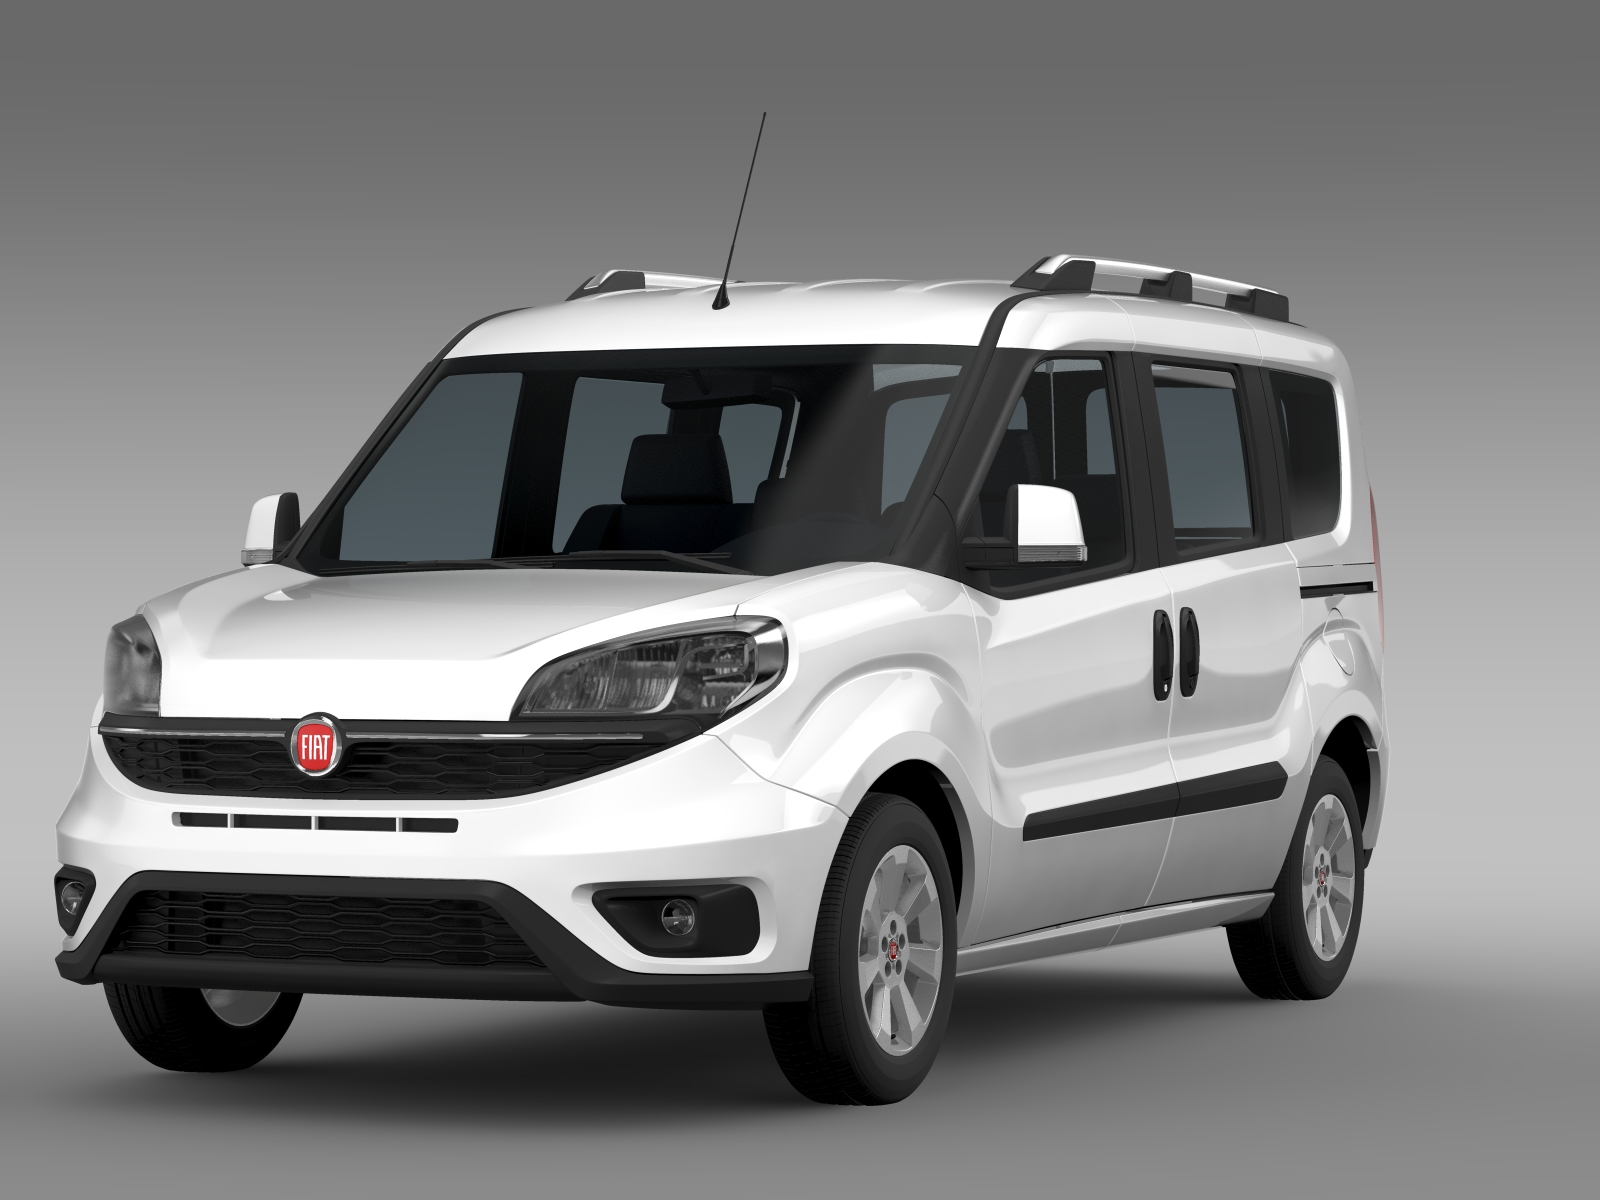 fiat doblo 263 uk spec 2015 3d model buy fiat doblo 263 uk spec 2015 3d model flatpyramid. Black Bedroom Furniture Sets. Home Design Ideas